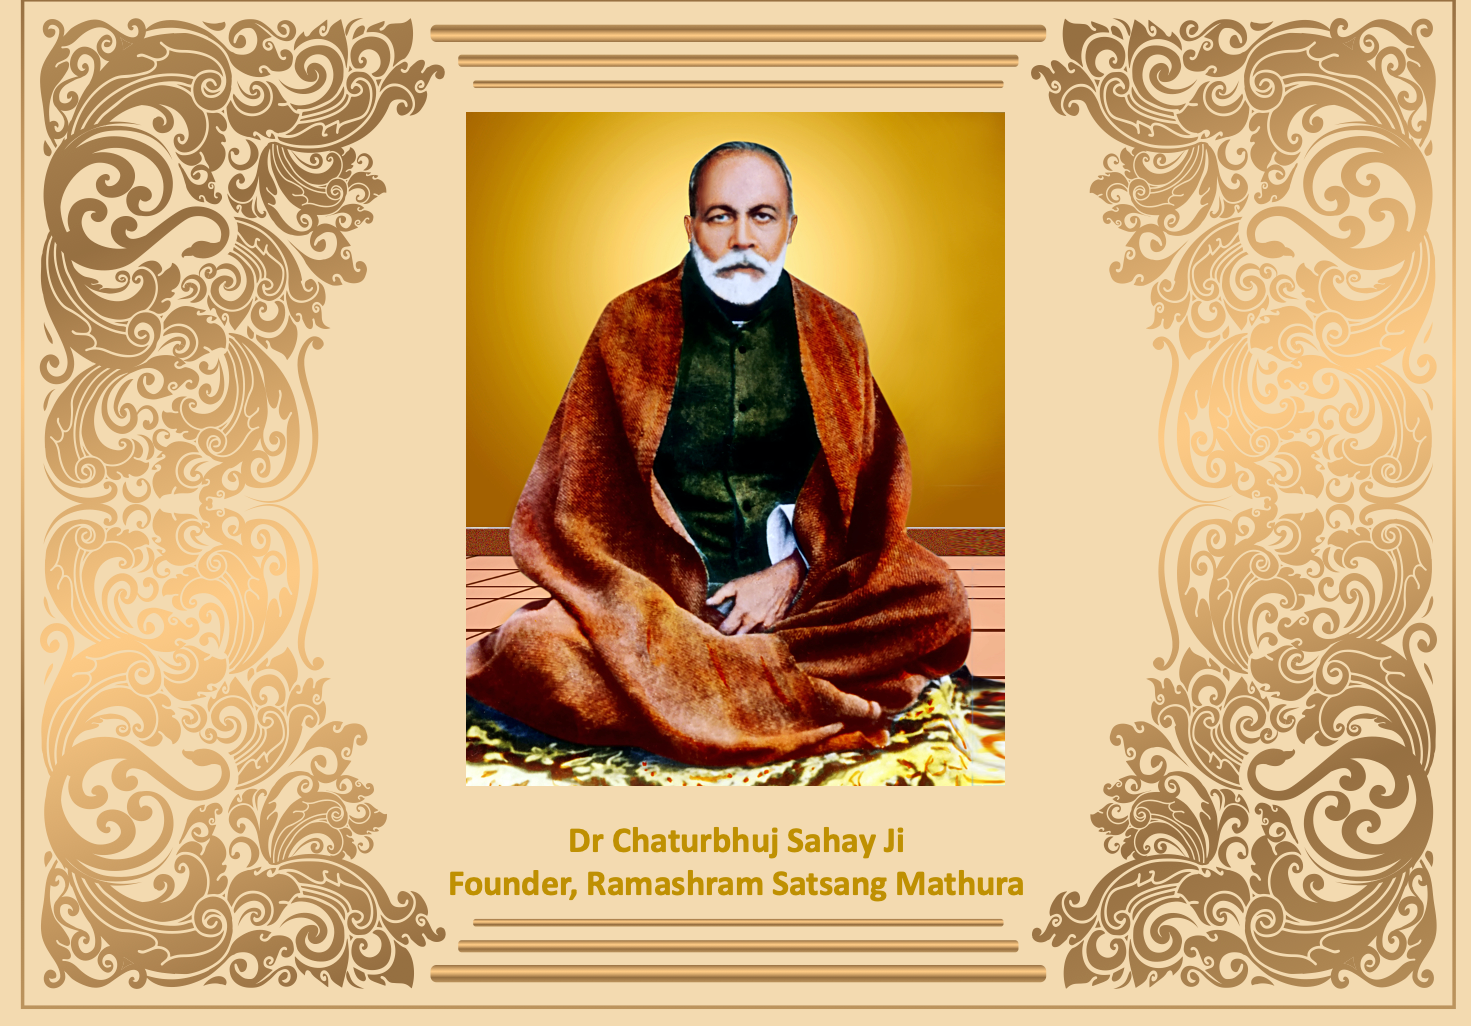 Ramashram Satsang Mathura – An Introduction